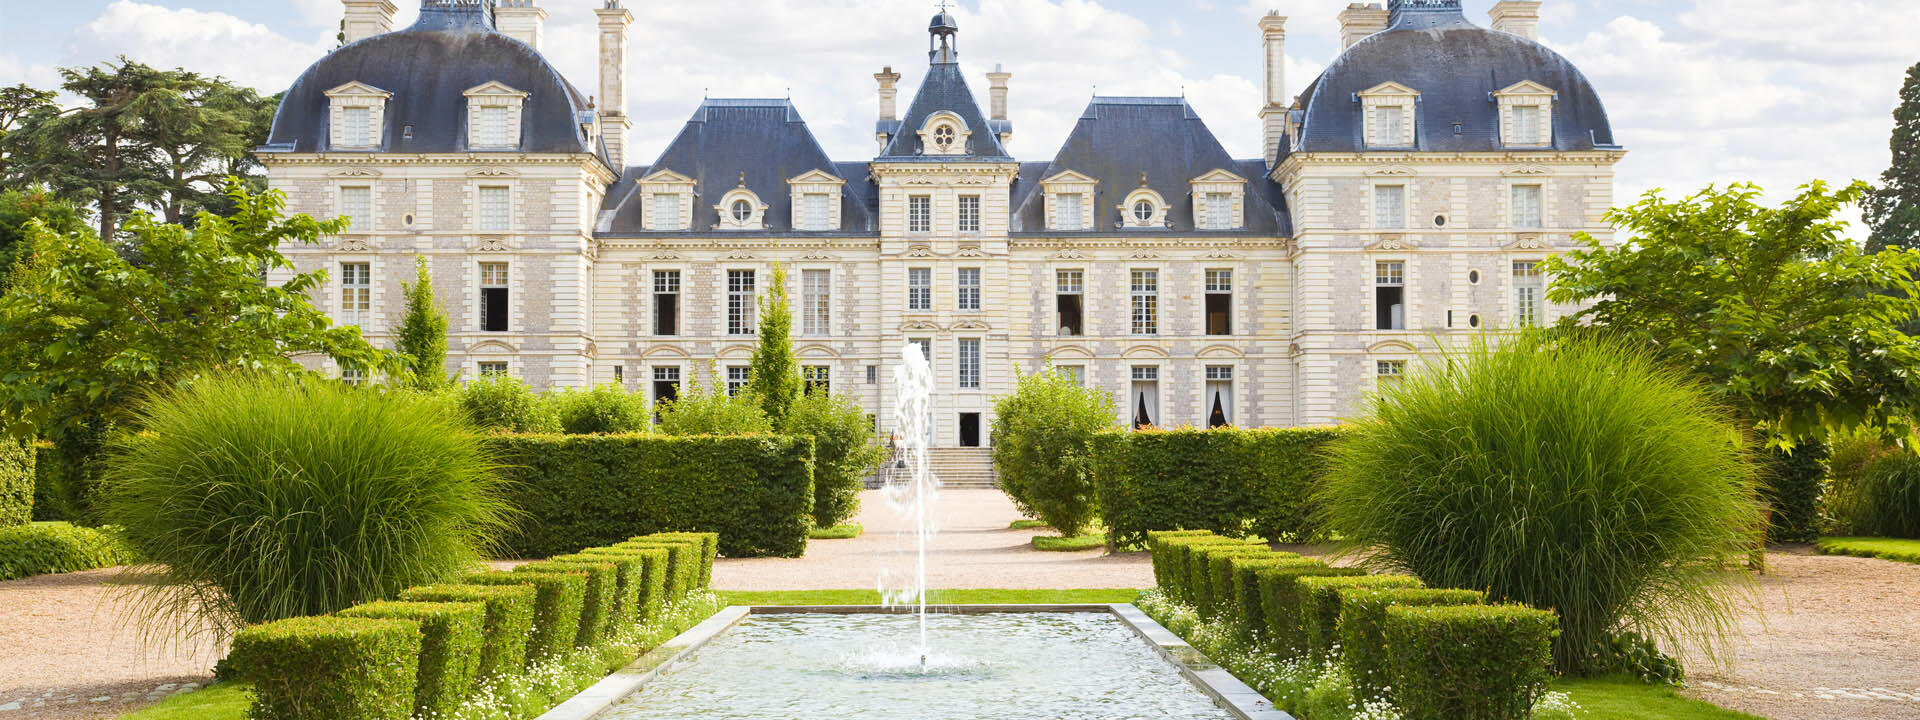 The best castles in Loire Valley you should visit at least once